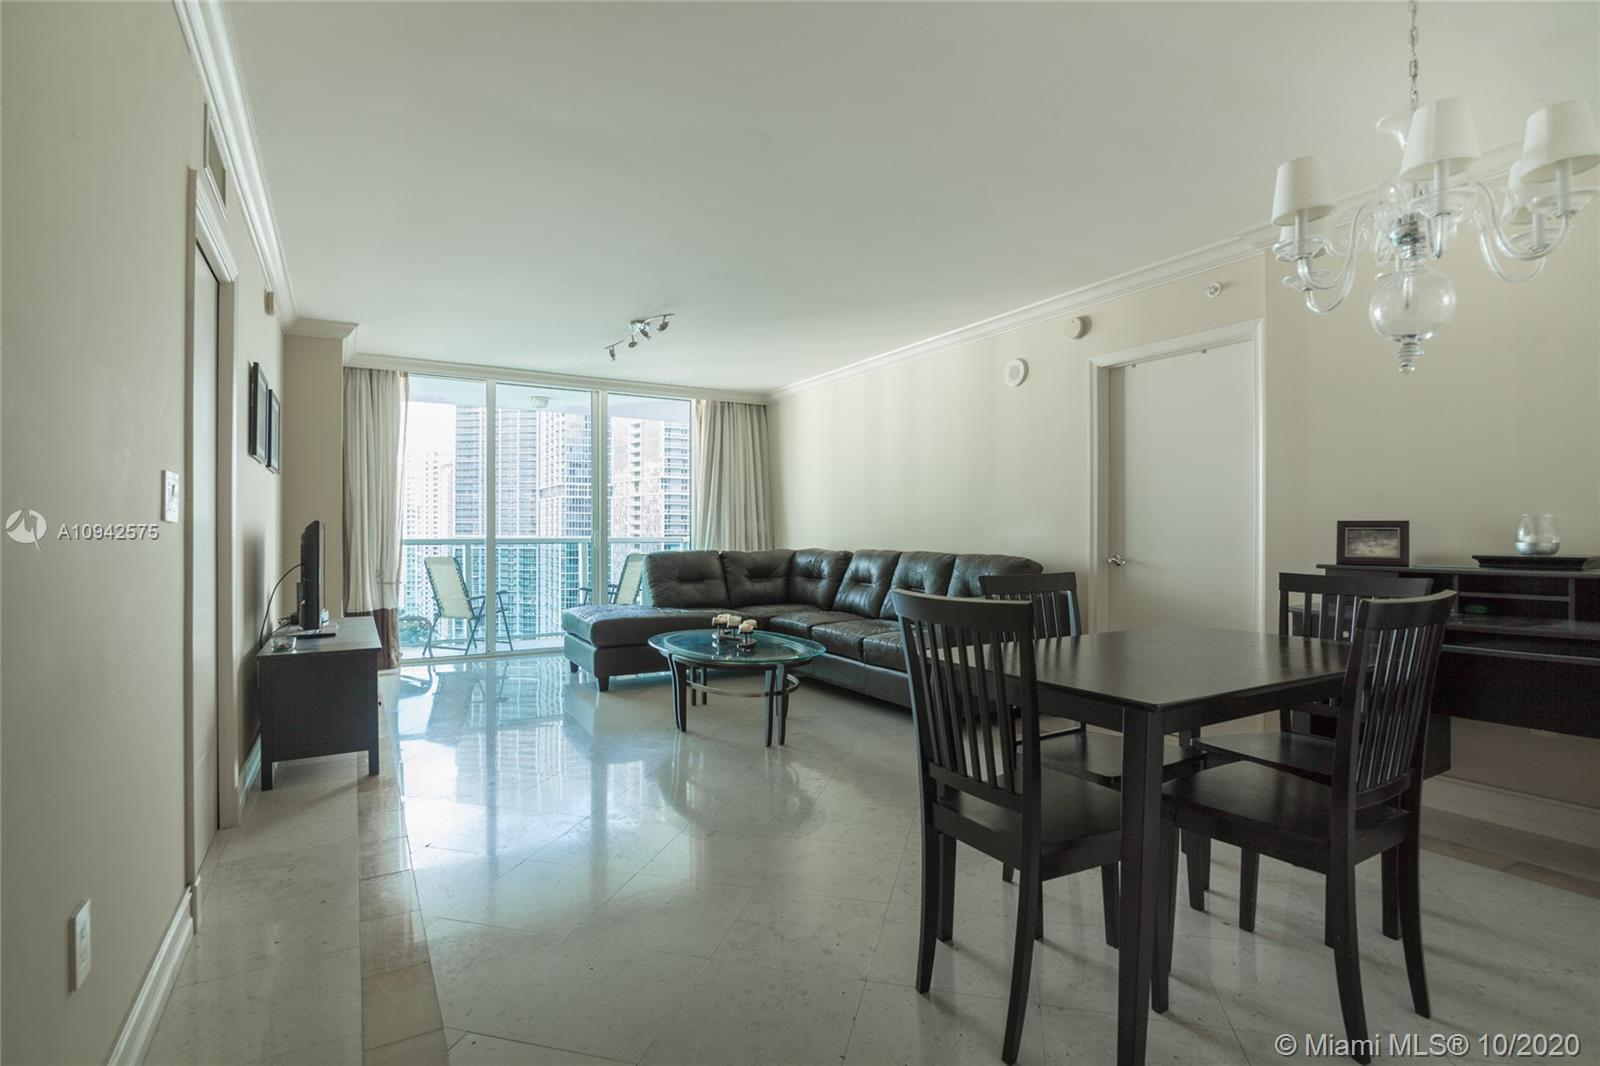 IMPECCABLE WATER VIEW UNIT IN THE HEART OF BRICKELL. THE MOST BEAUTIFUL APARTMENT IN THE BUILDING. F